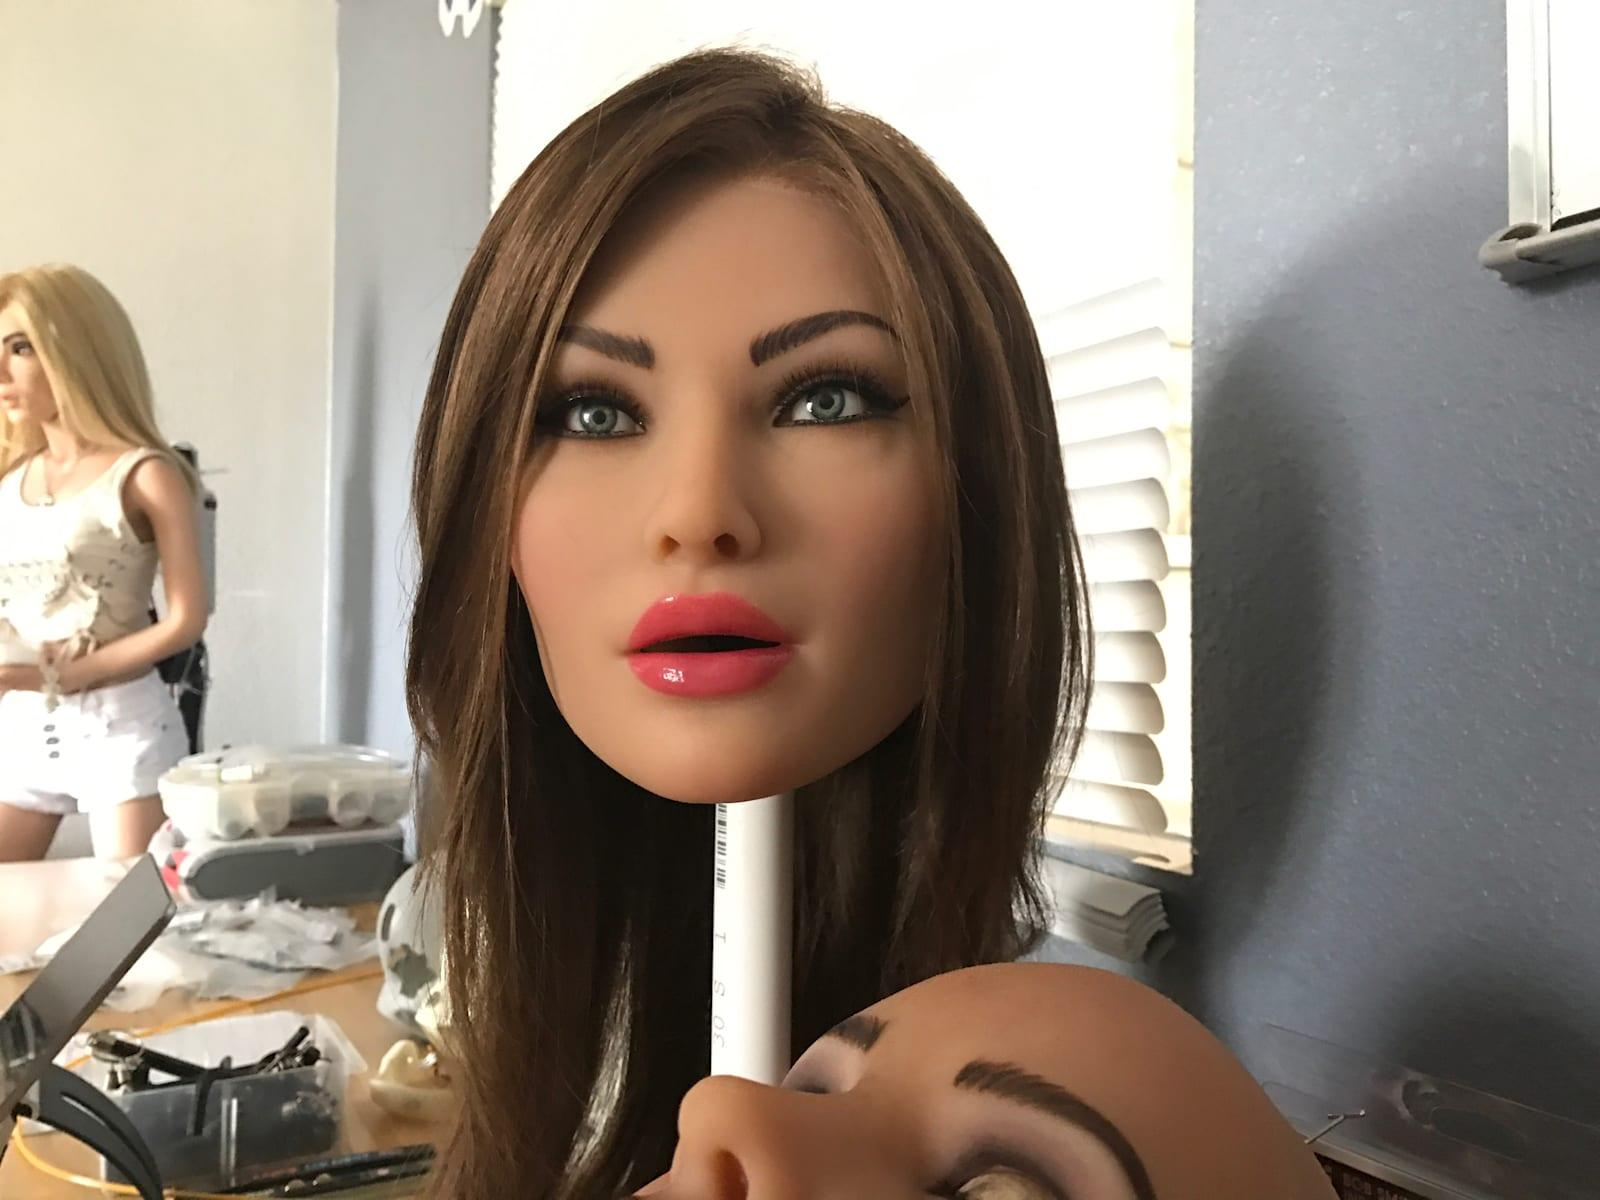 Asian Doll Machine Porn realdoll's first sex robot took me to the uncanny valley